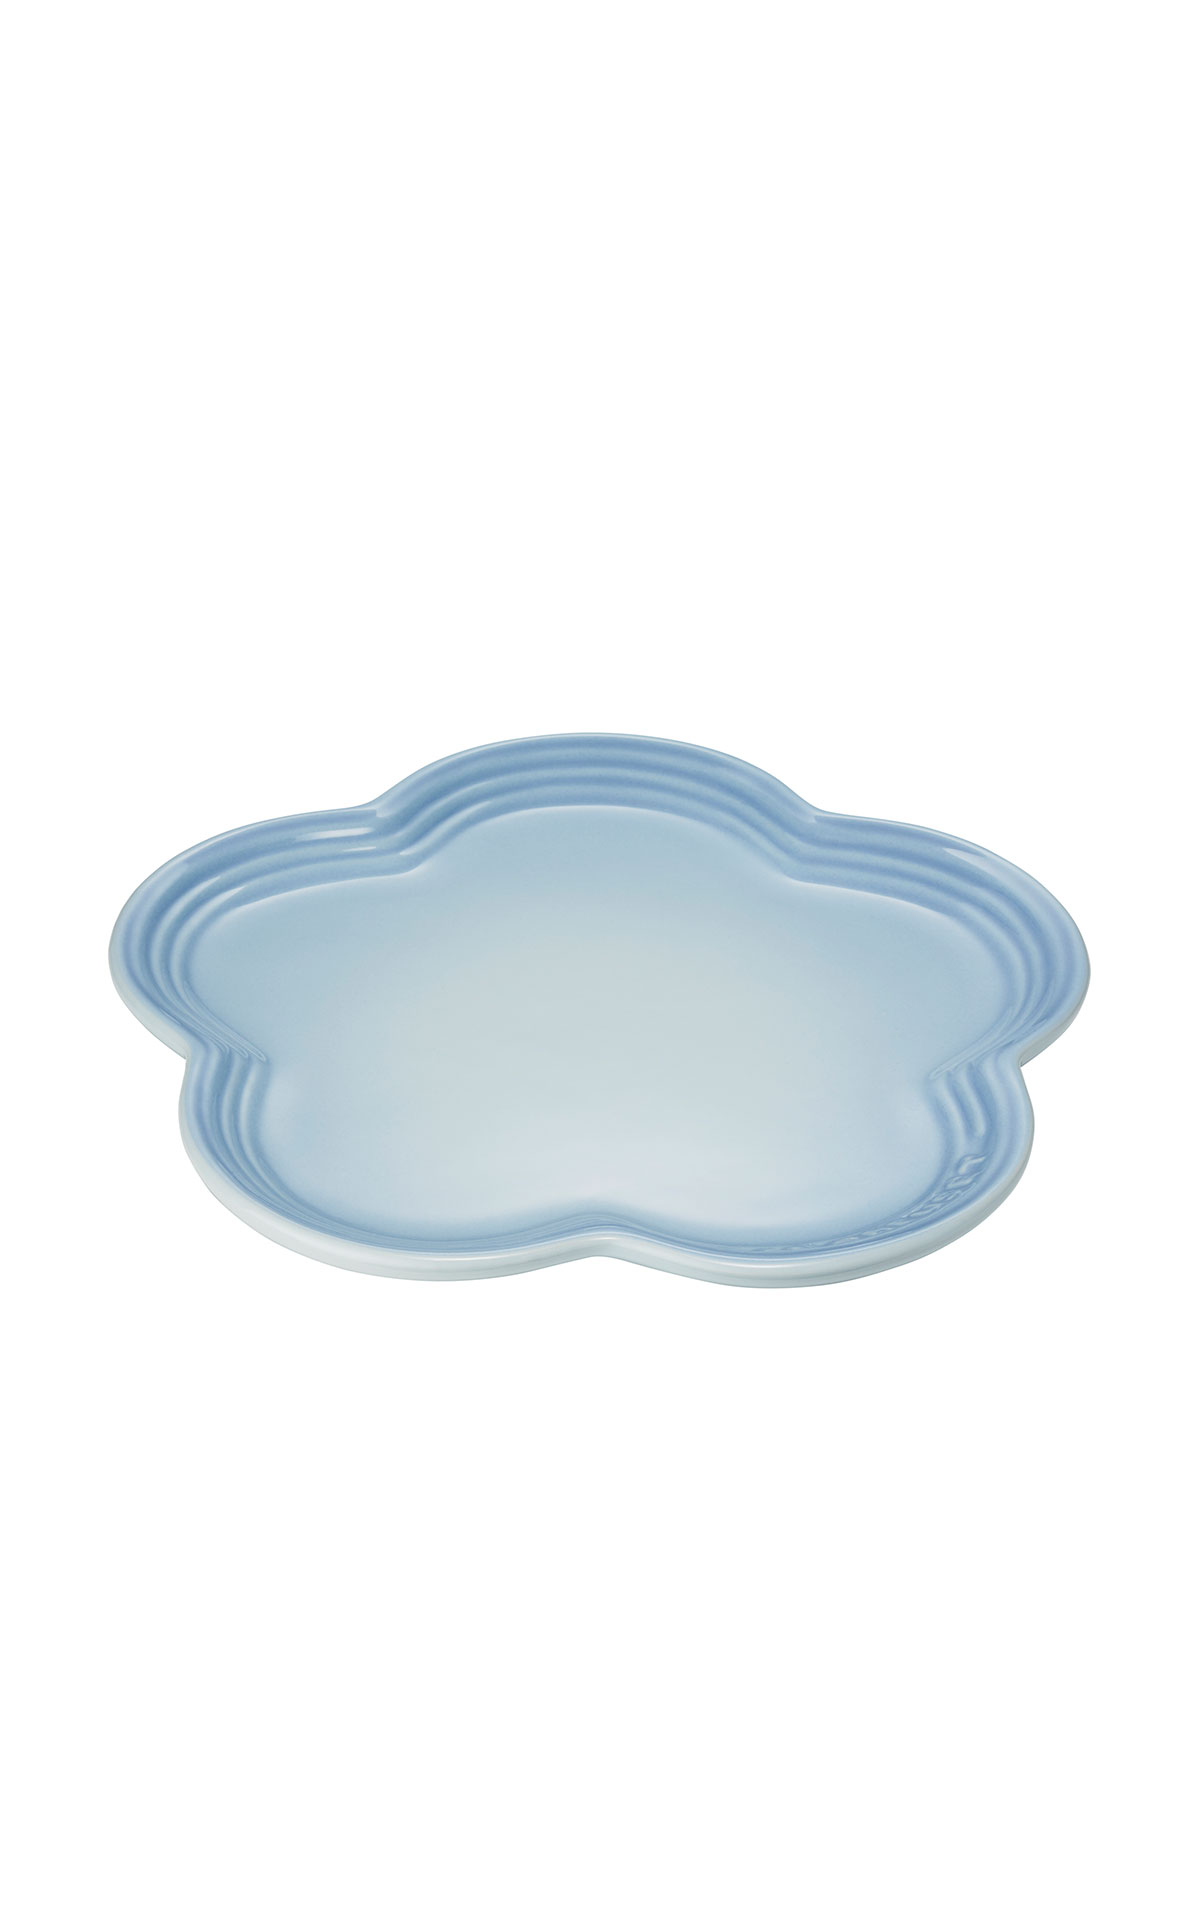 Le Creuset Blue flower plate from Bicester Village